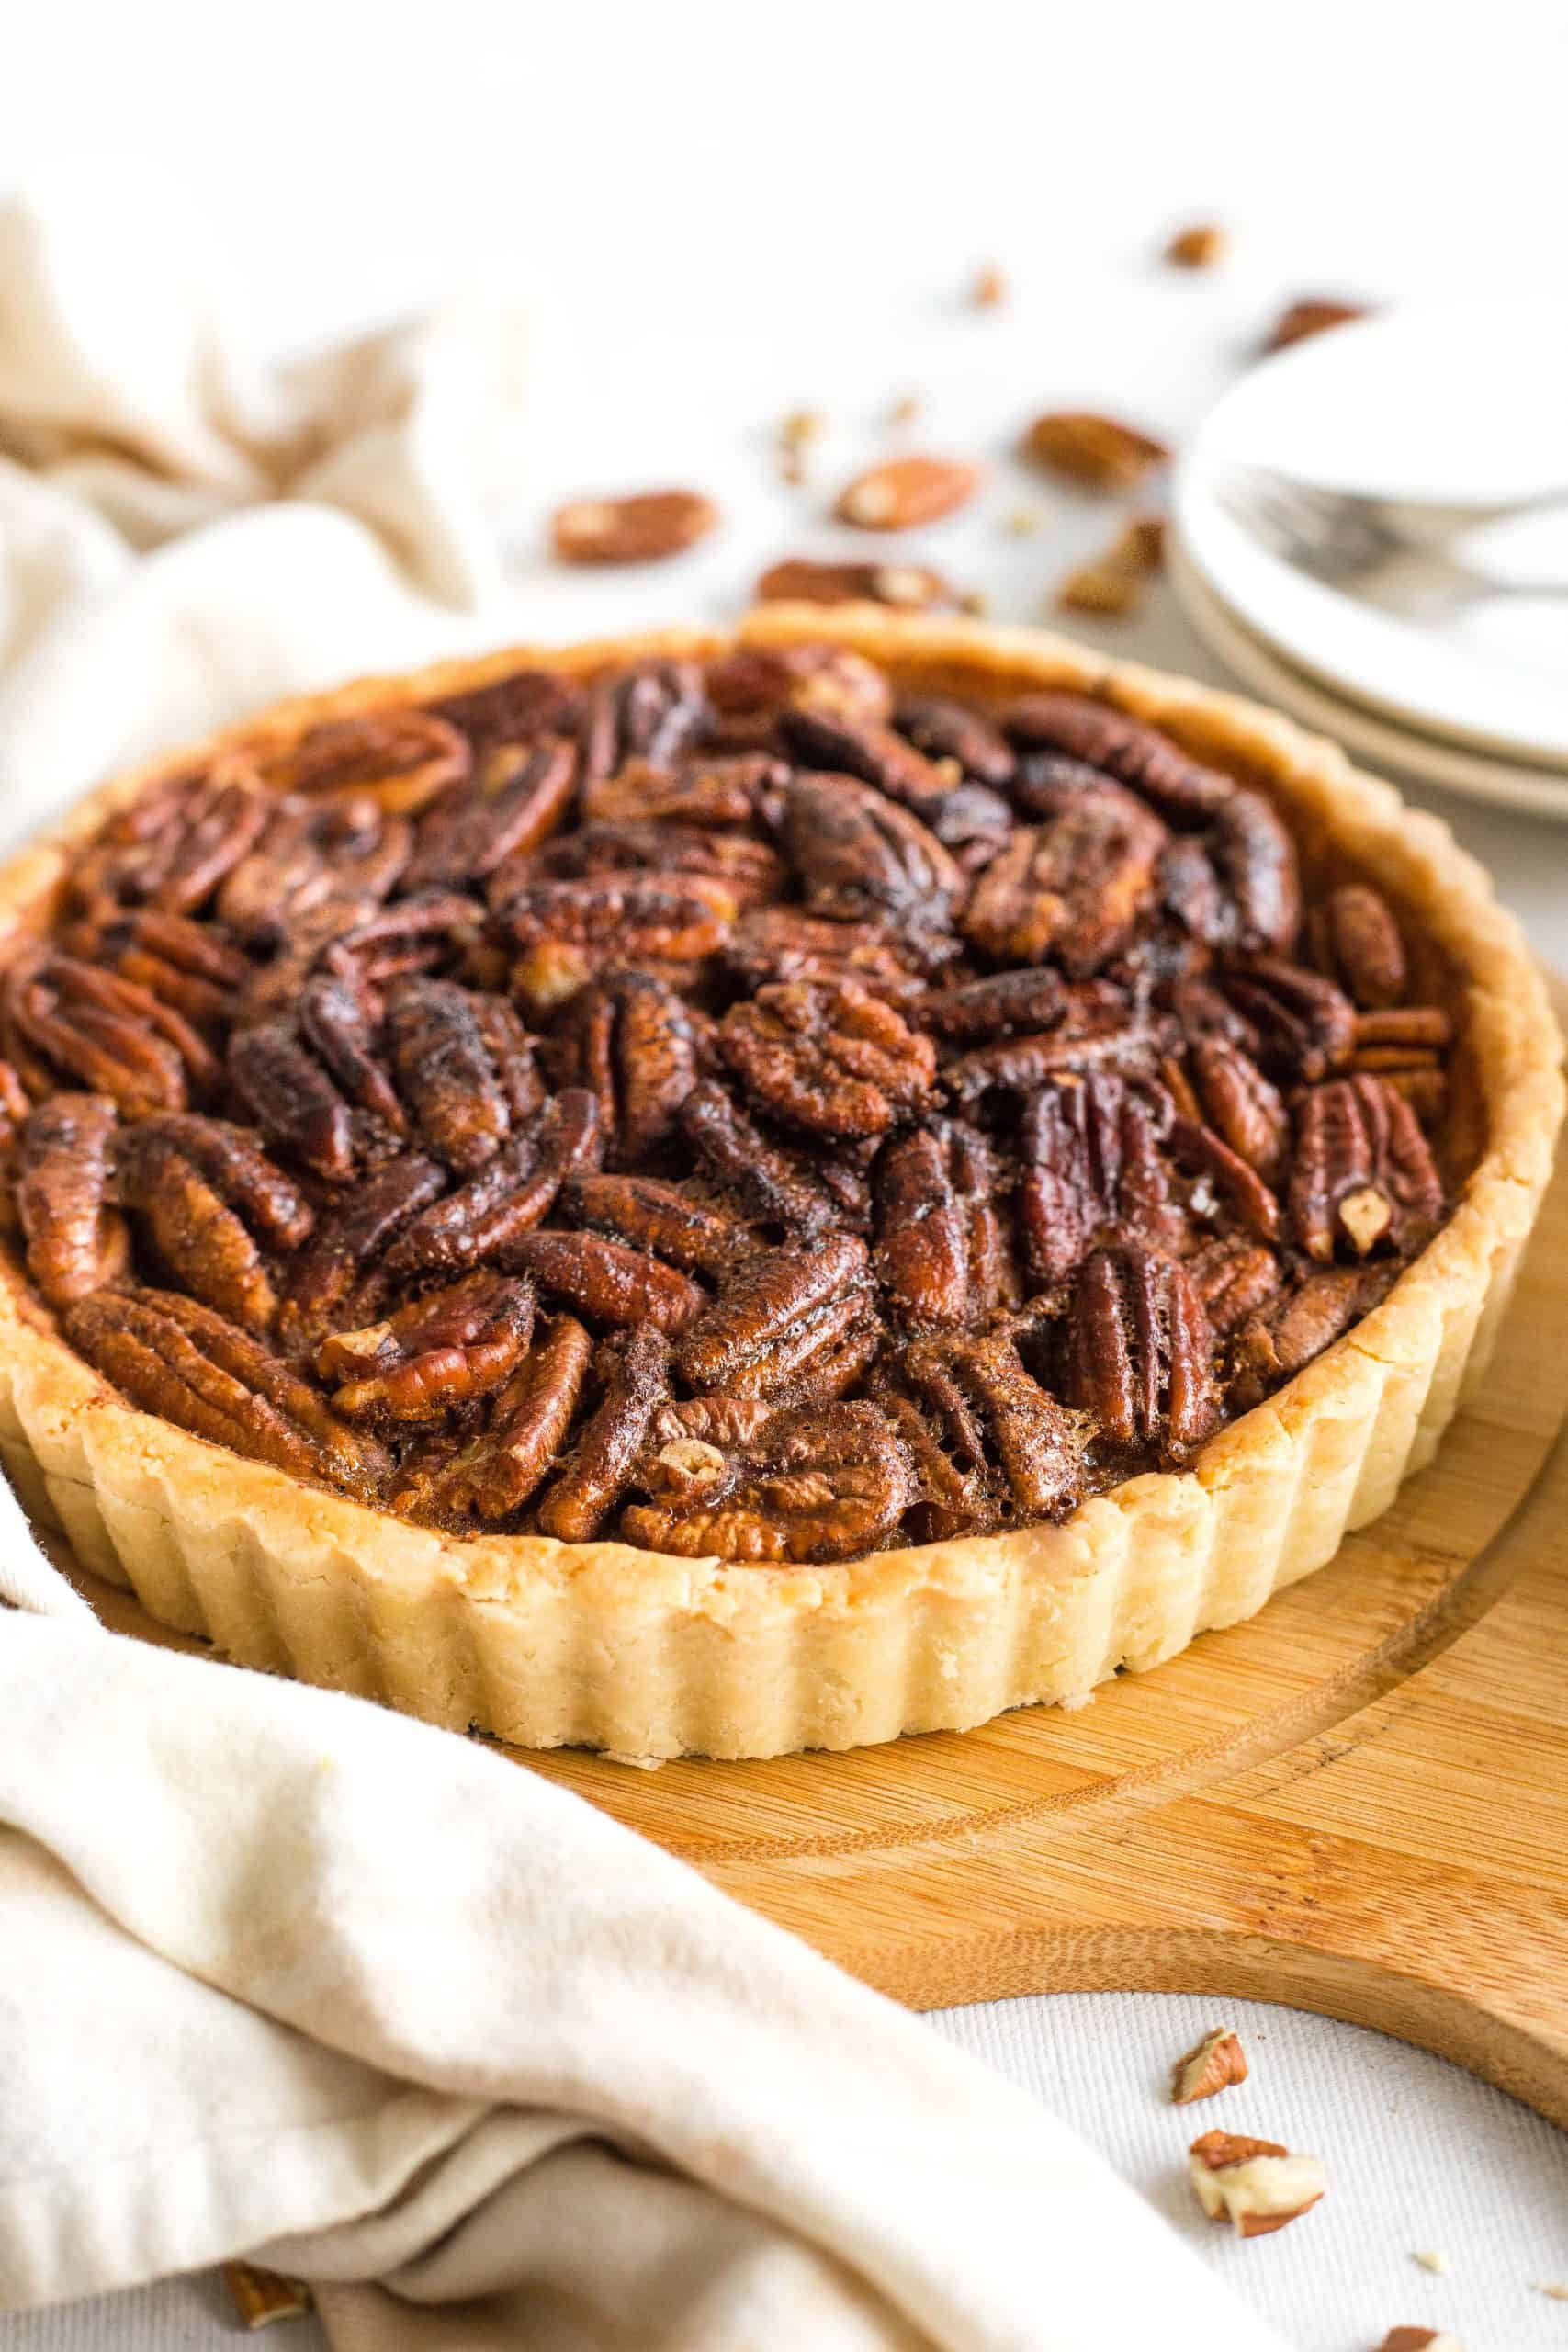 Whole pecan pie on a wooden board.